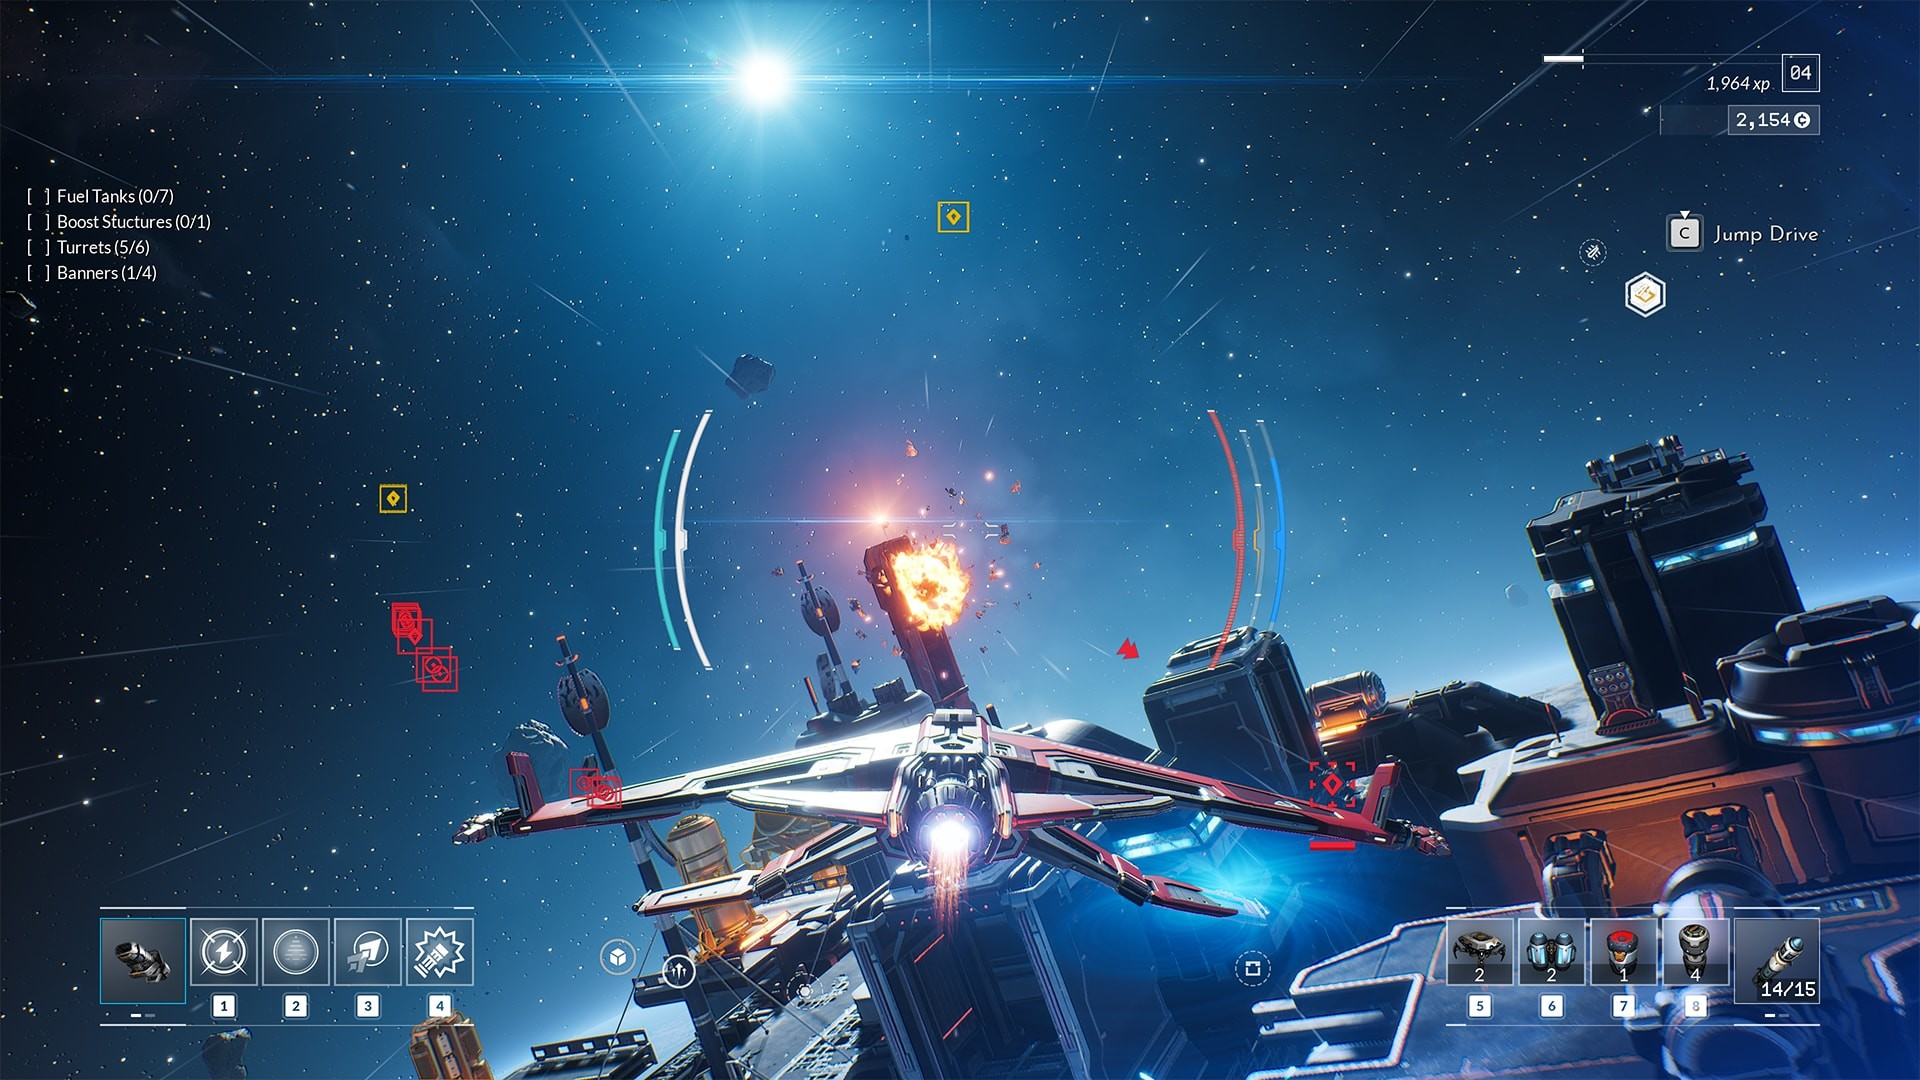 Check out a new Everspace 2 video and developer AMA in our forums